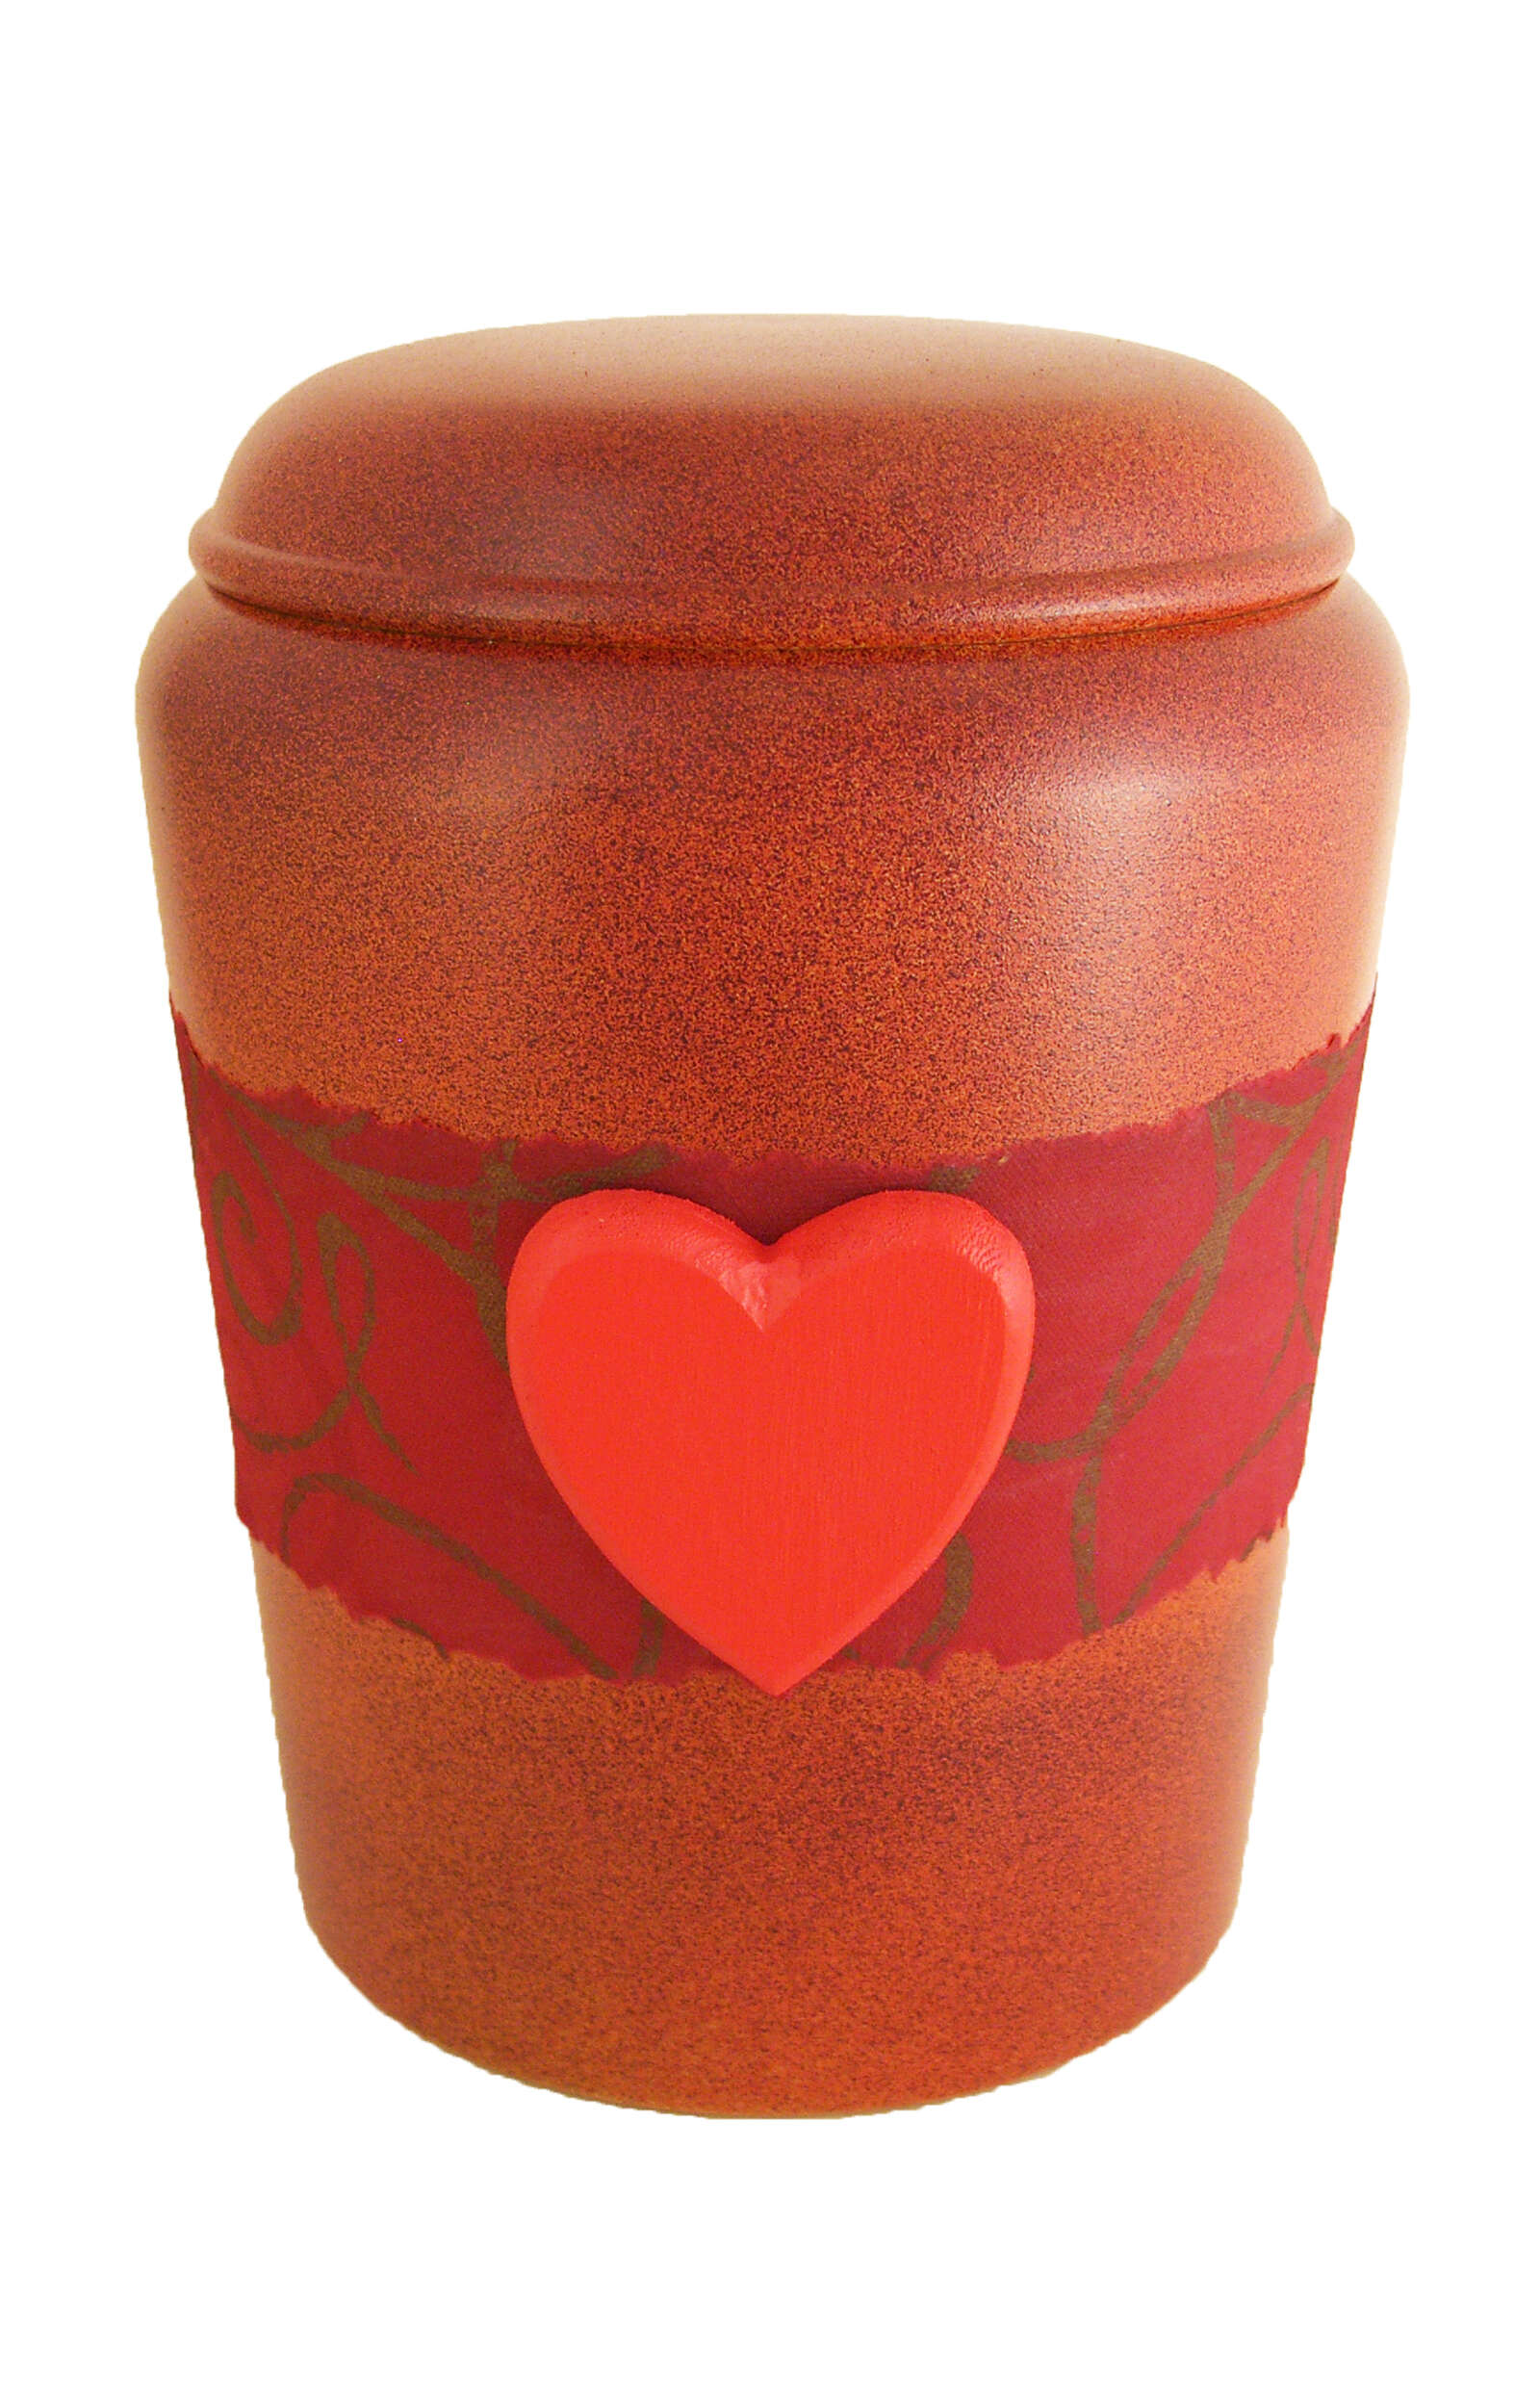 en BOH1724 biodigradable urn heart red Nona Mela funeral urn for human ashes